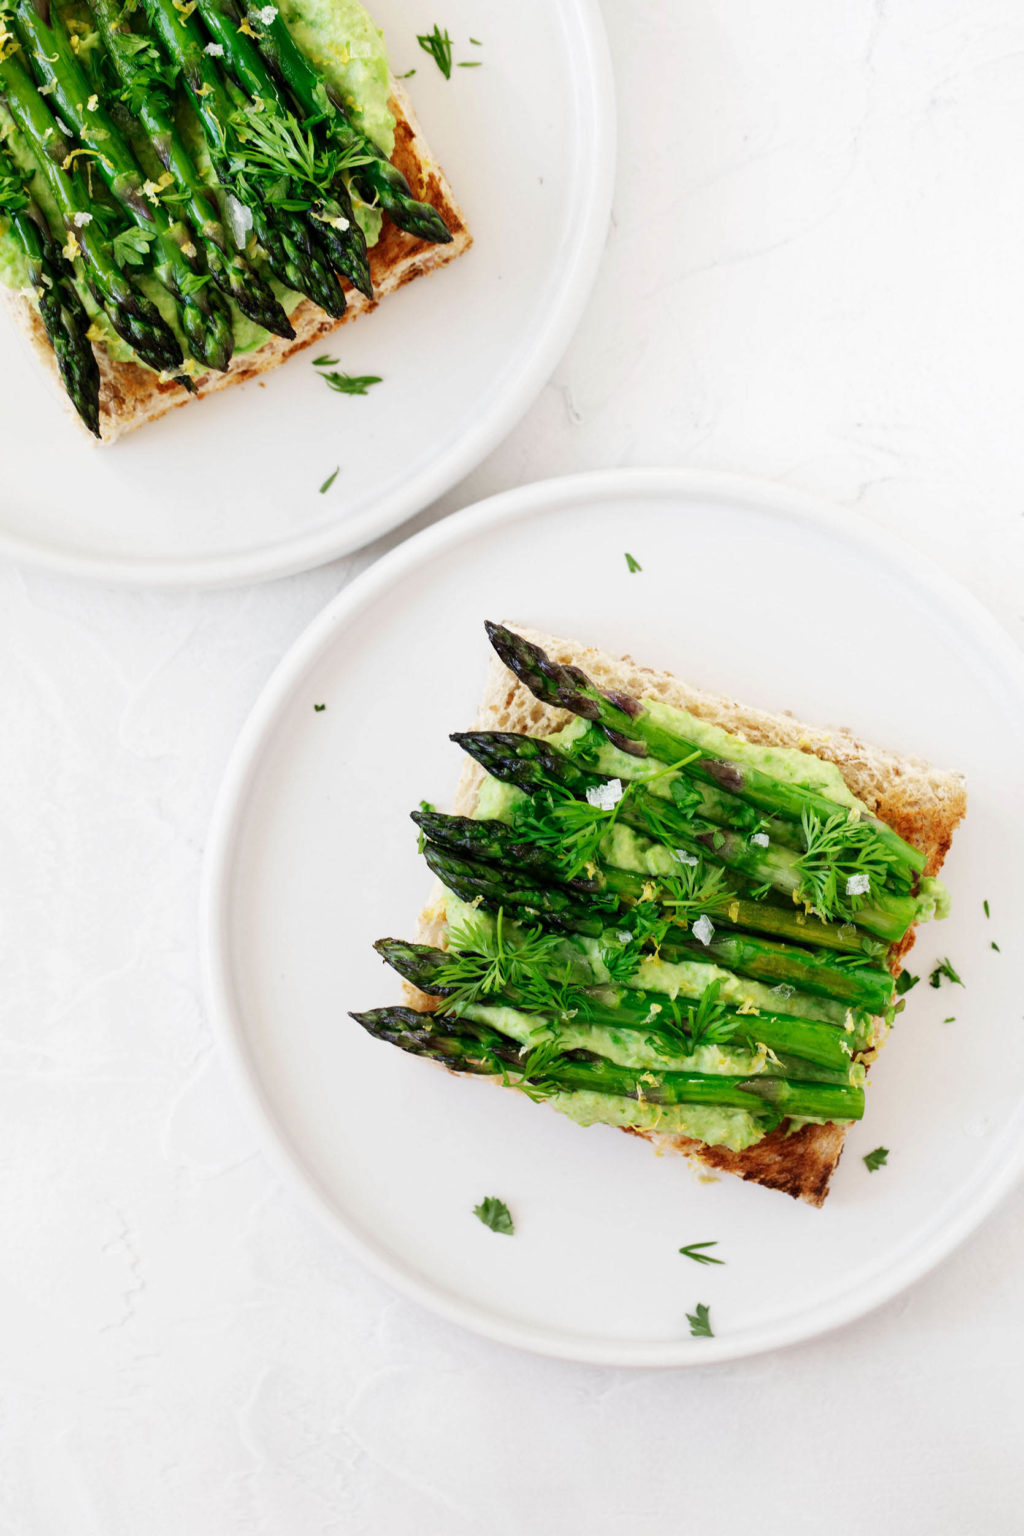 Two round, white plates are laid out on a white surface. They're being used to serve toast with a creamy pea spread and grilled asparagus spears.